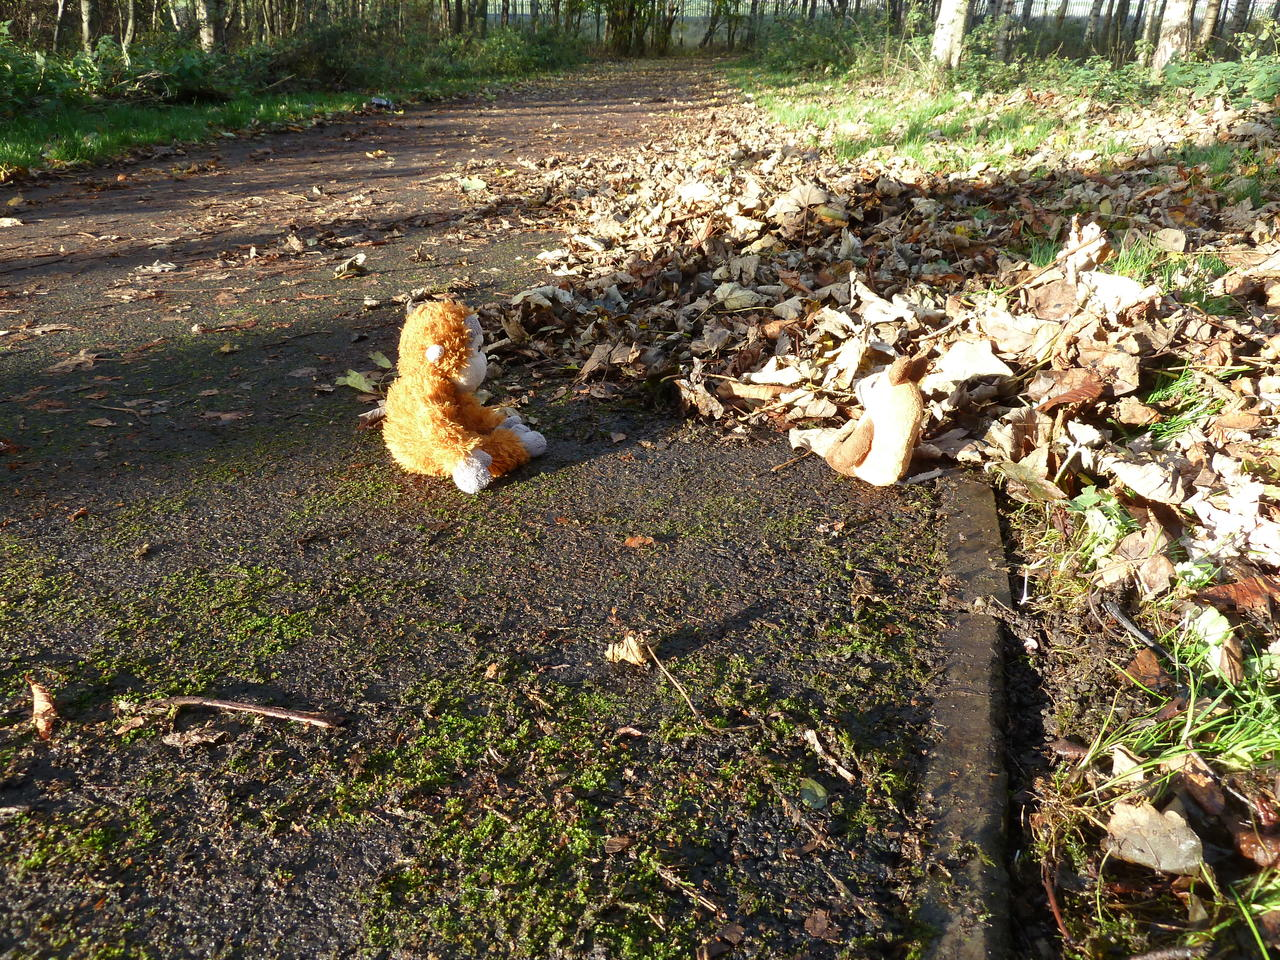 Pongo and Mouse sitting on the path, which is partly cleaned from leaves